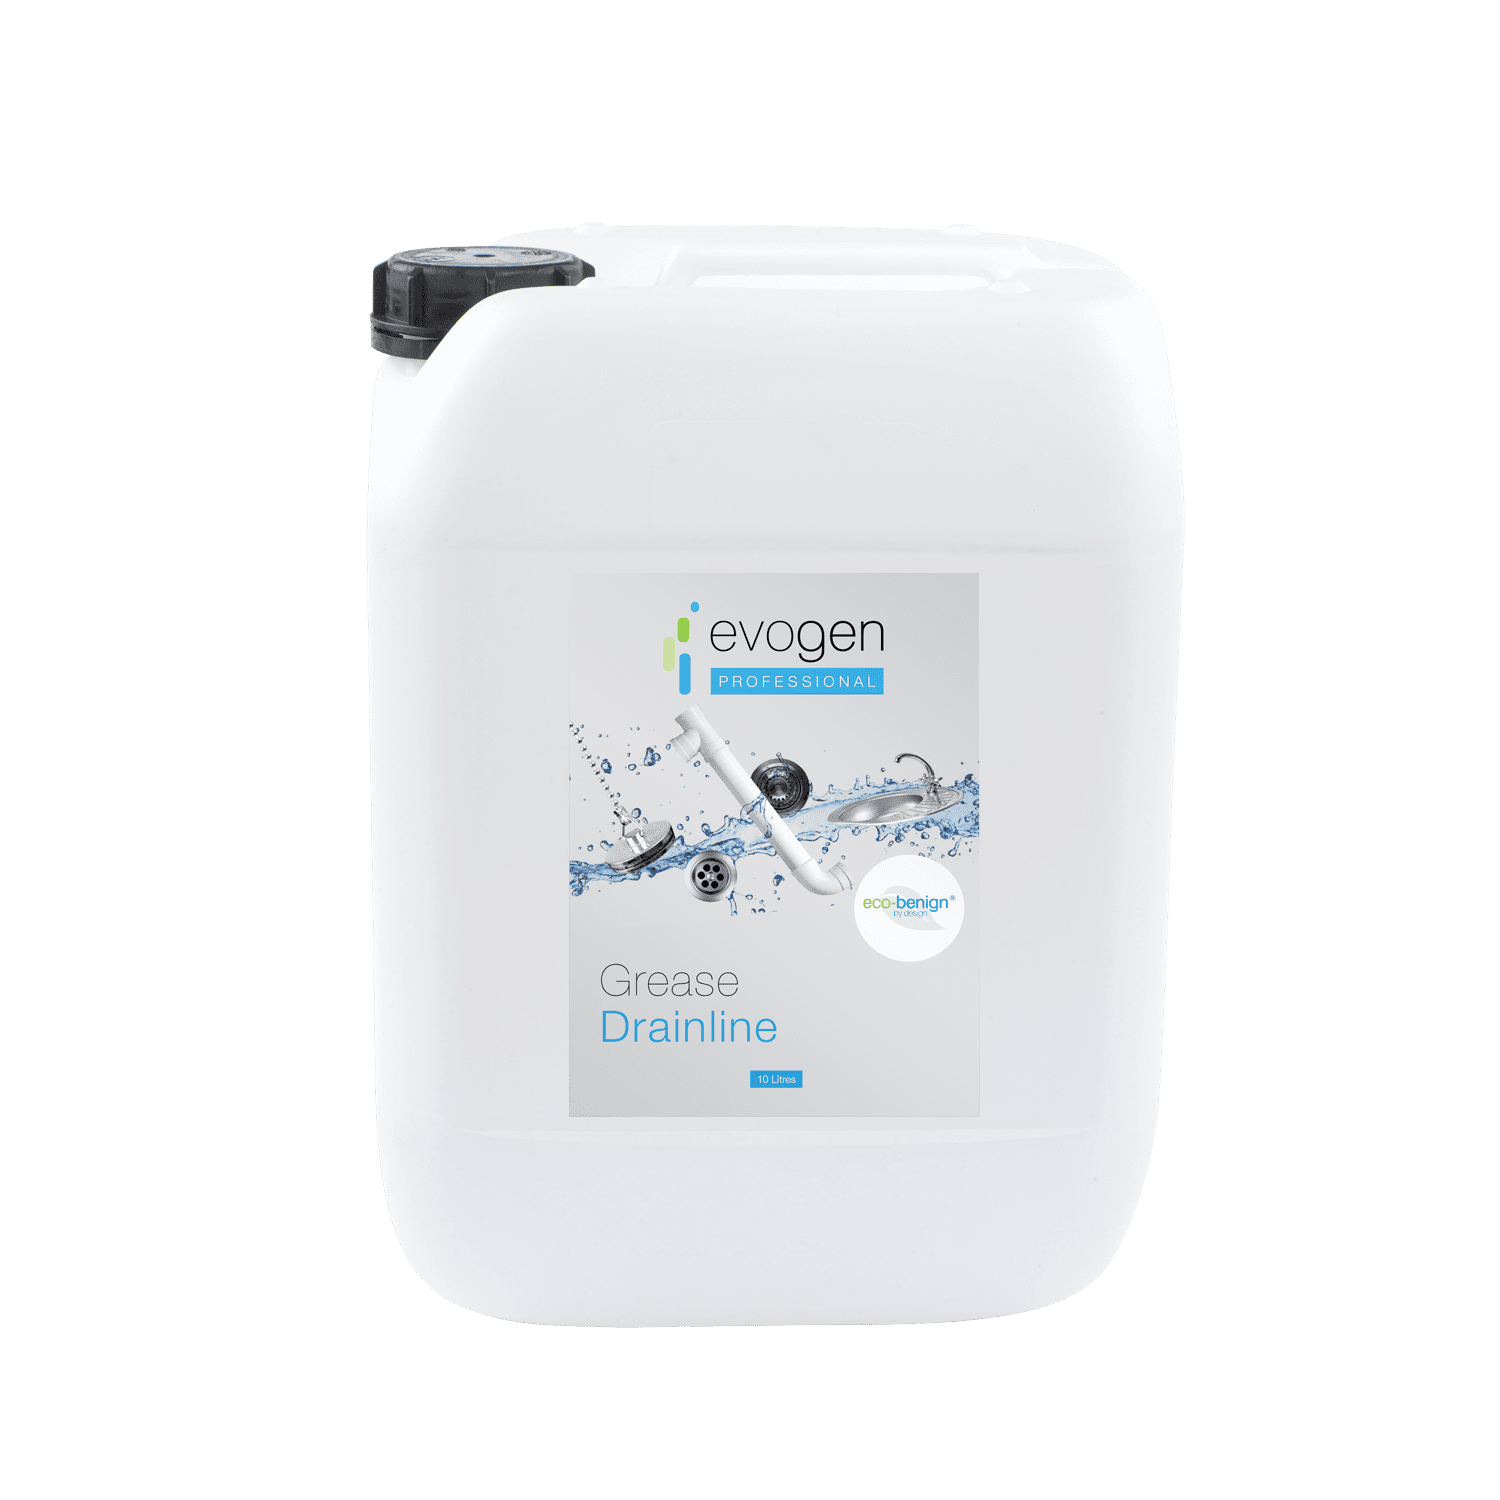 Grease Drain Line - eco-friendly grease trap cleaning product for kitchens. Wholesale oil and grease remover